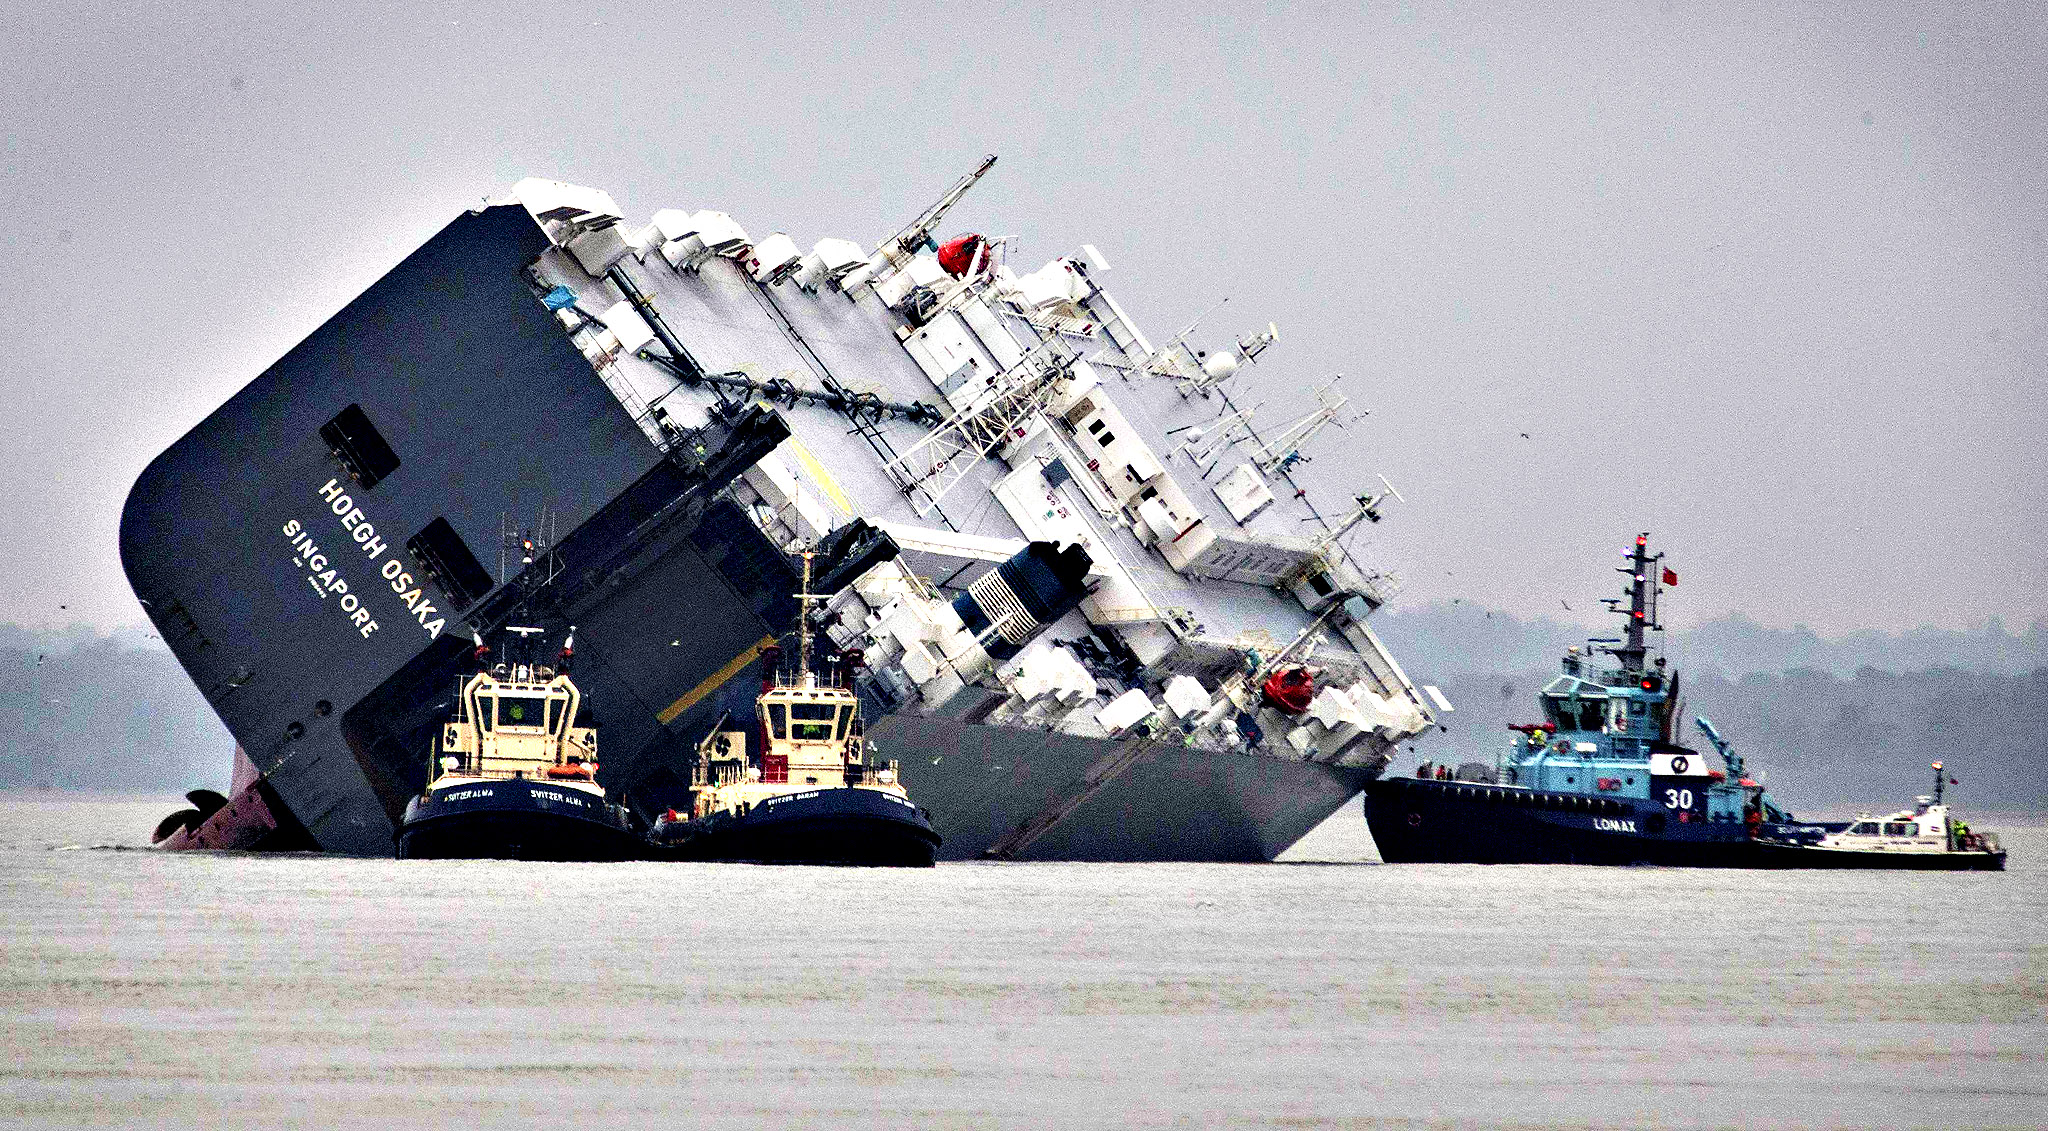 The cargo ship Hoegh Osaka lies on its side after being deliberately ran aground on the Bramble Bank in the Solent estuary, near Southampton in southern England January 5, 2015. The vessel was deliberately run aground on Saturday evening after it began to list, according to its owners Hoegh Autoliners.